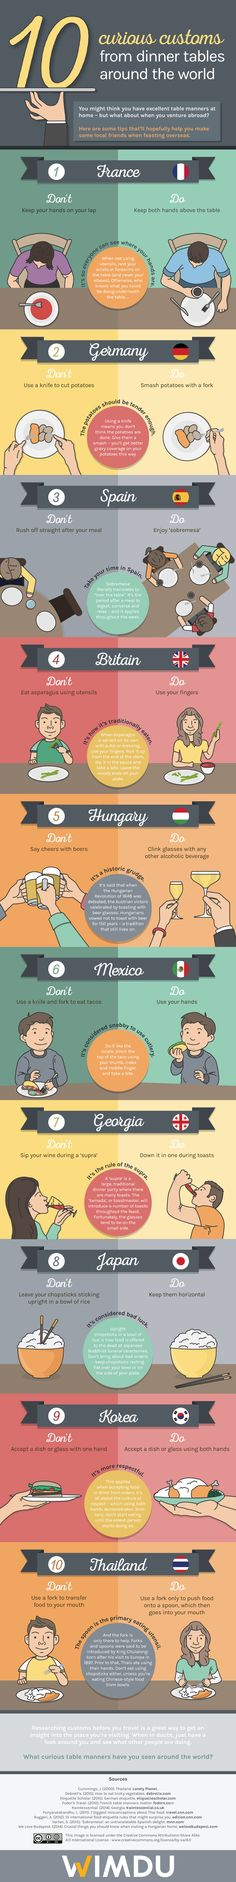 Infographic: 10 Curious Dining Customs Around The World - DesignTAXI.com